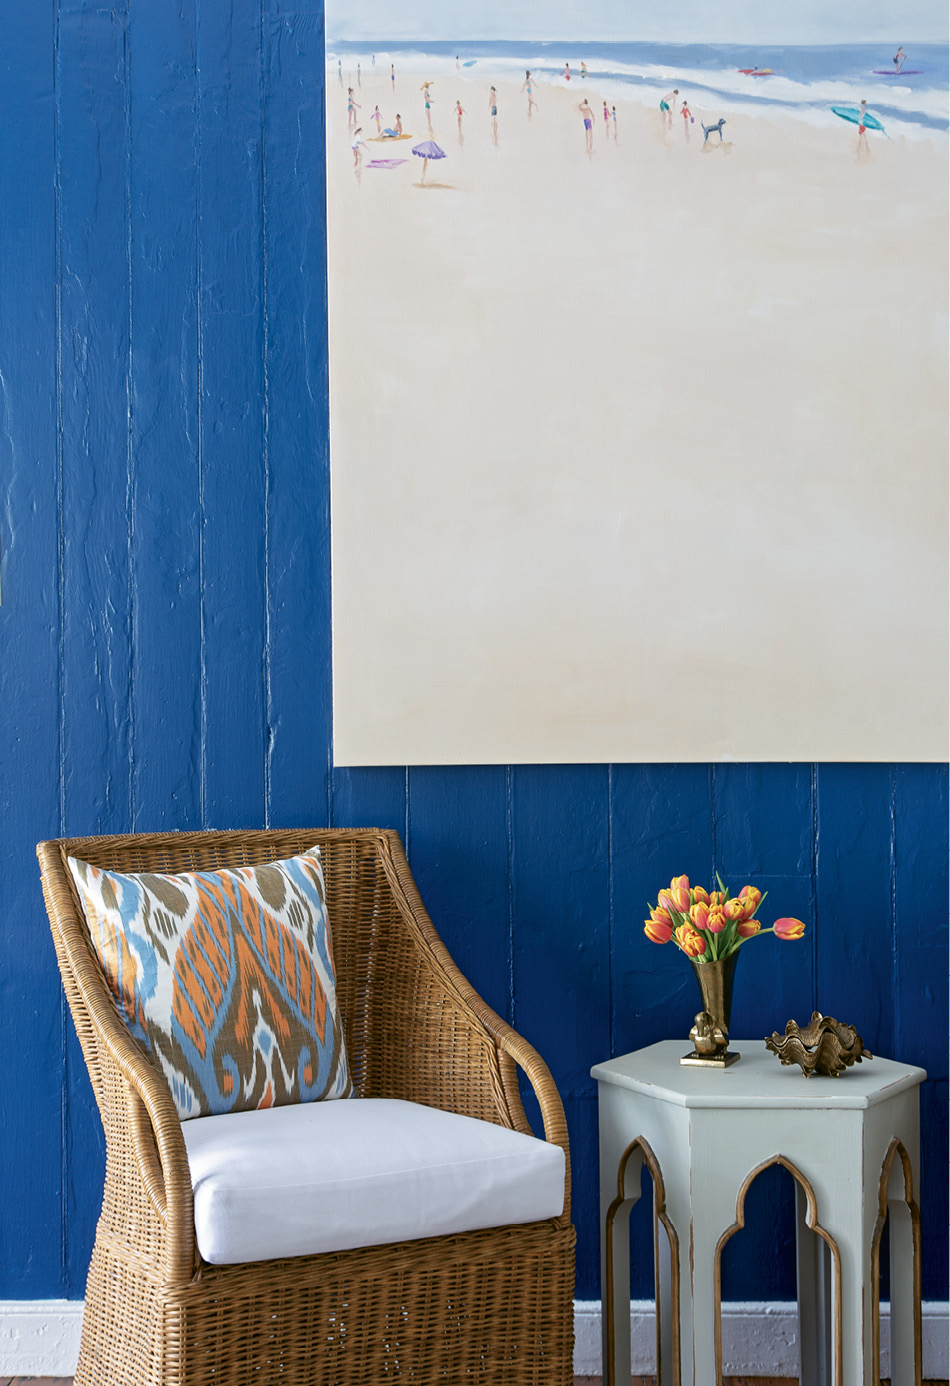 Serene Scene: Local artist Shannon Wood's expansive beach scene positively pops from the bold blue walls, a cheery welcome to the home. Beneath it, a Williams-Sonoma Home wicker chair invites visitors to sit and stay awhile.